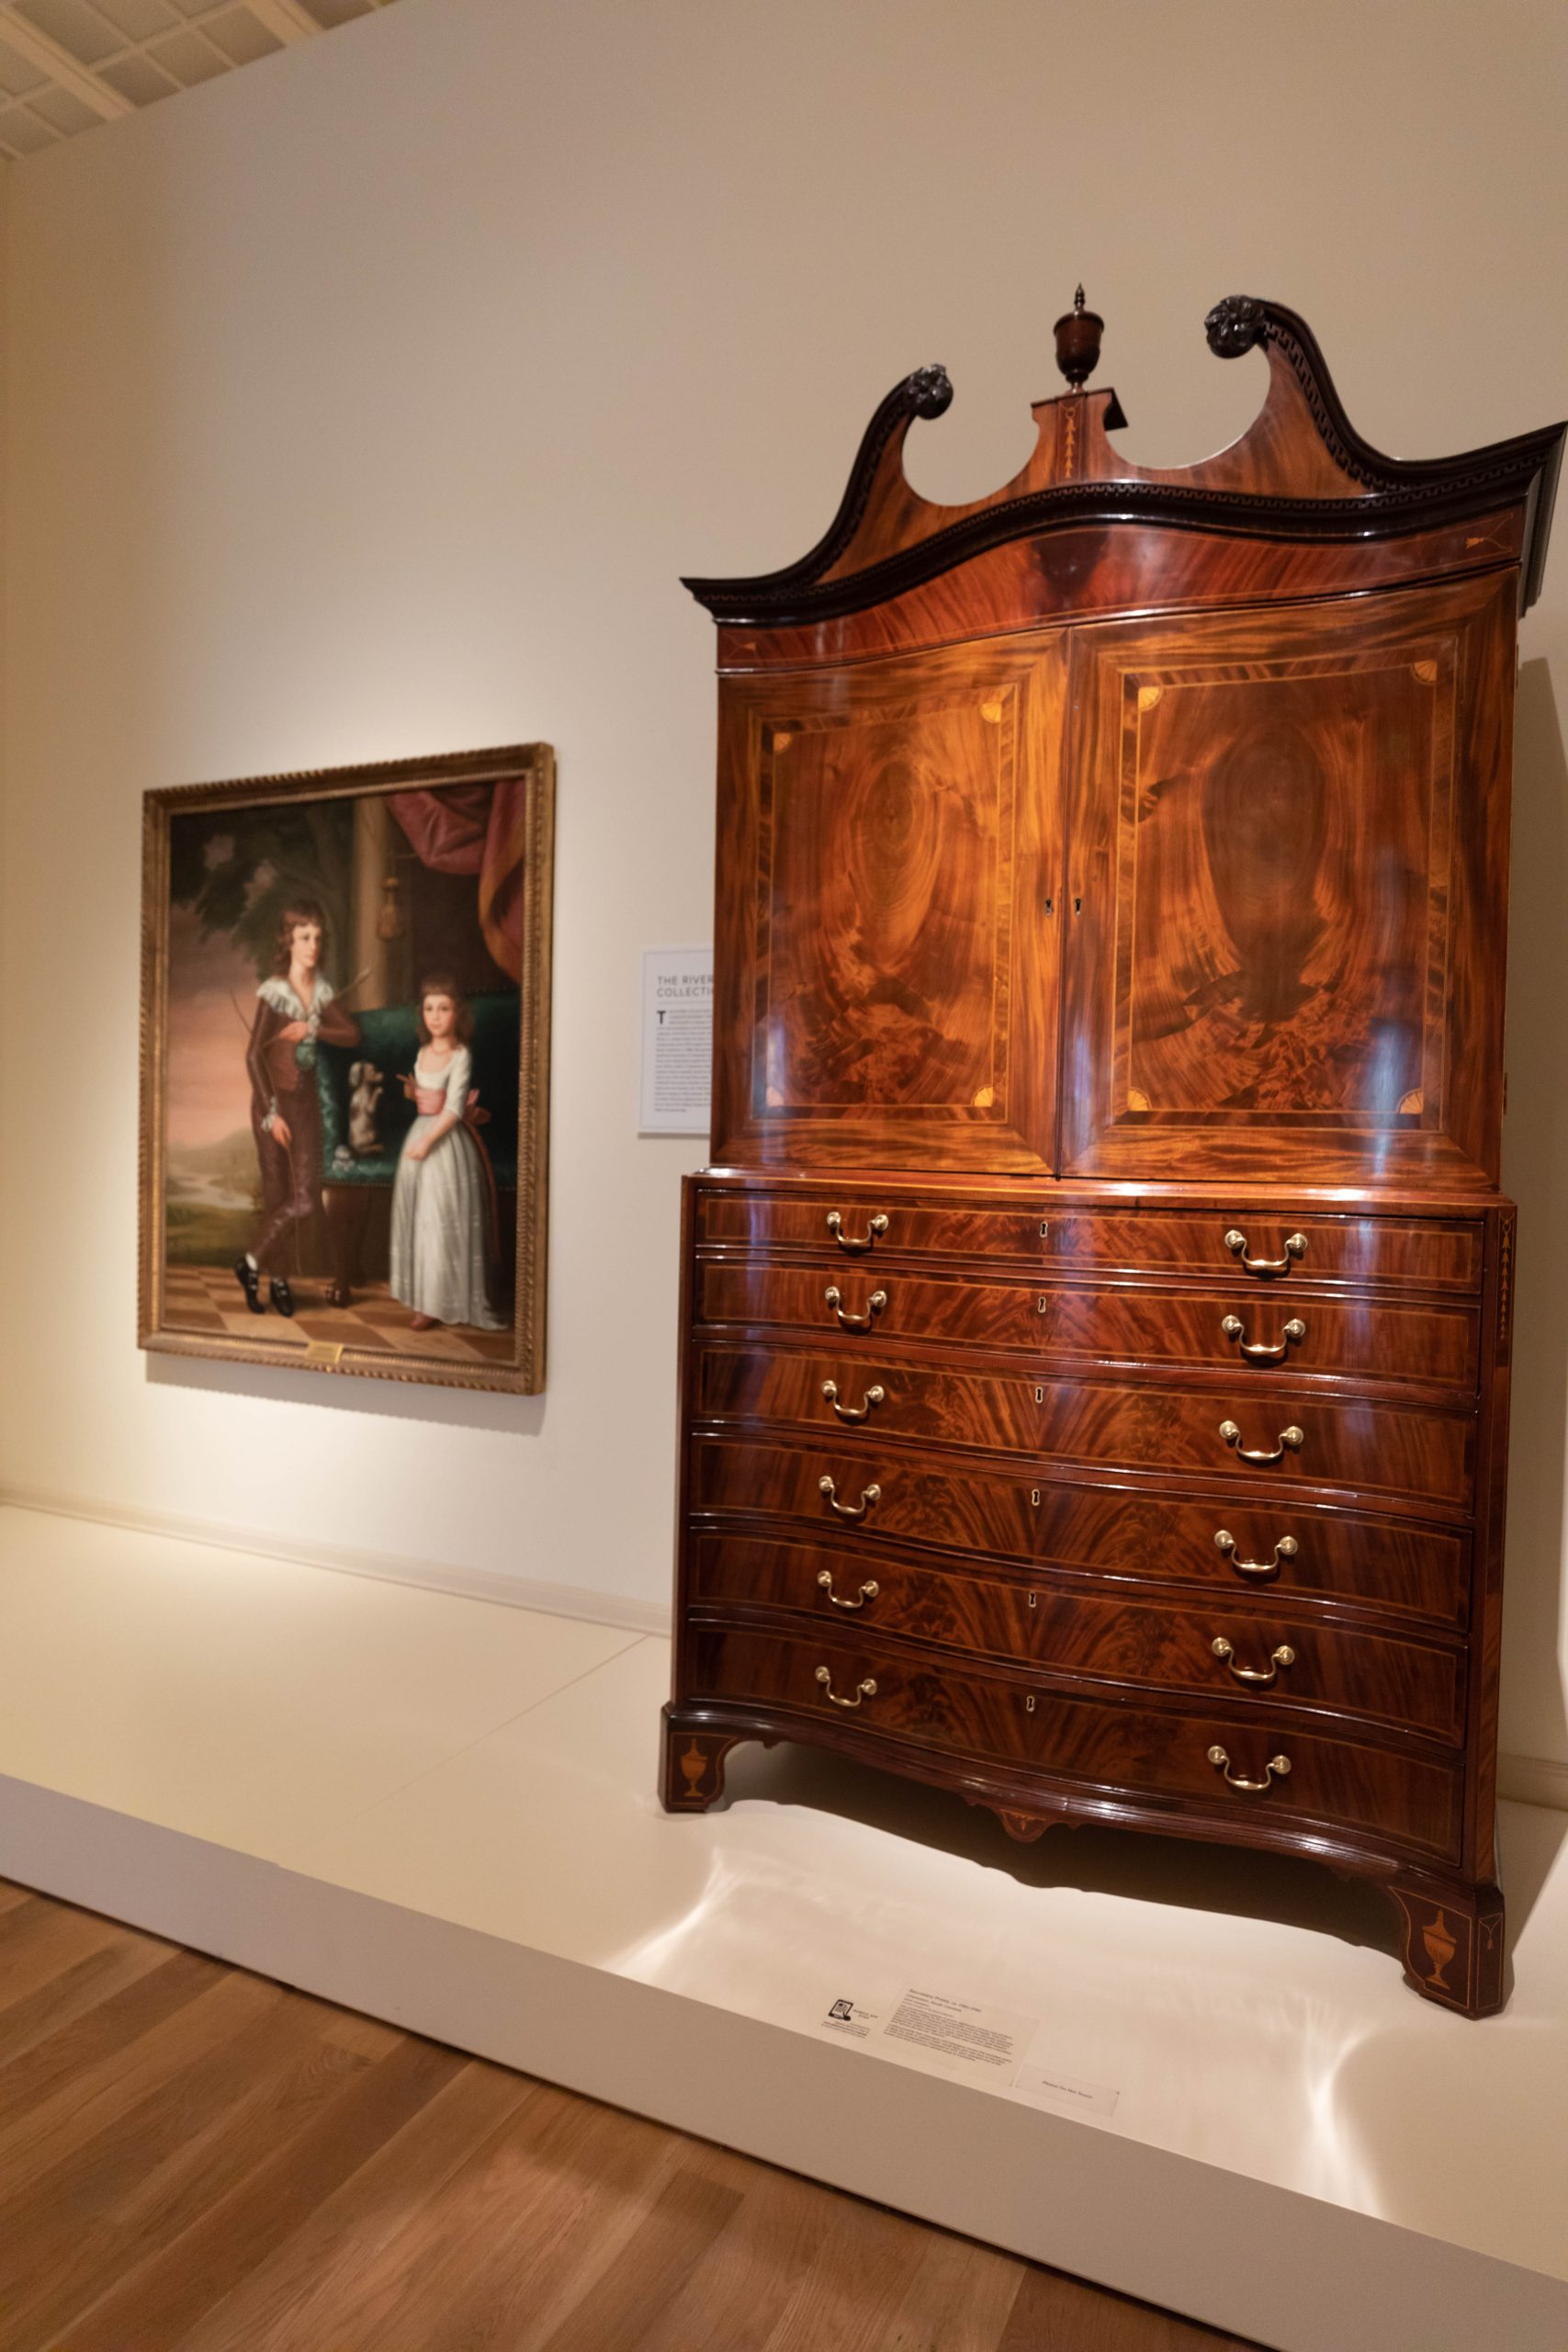 Antique Charleston Cabinet at The Gibbes Museum of Art in Charleston South Carolina Photographed by Annie Fairfax